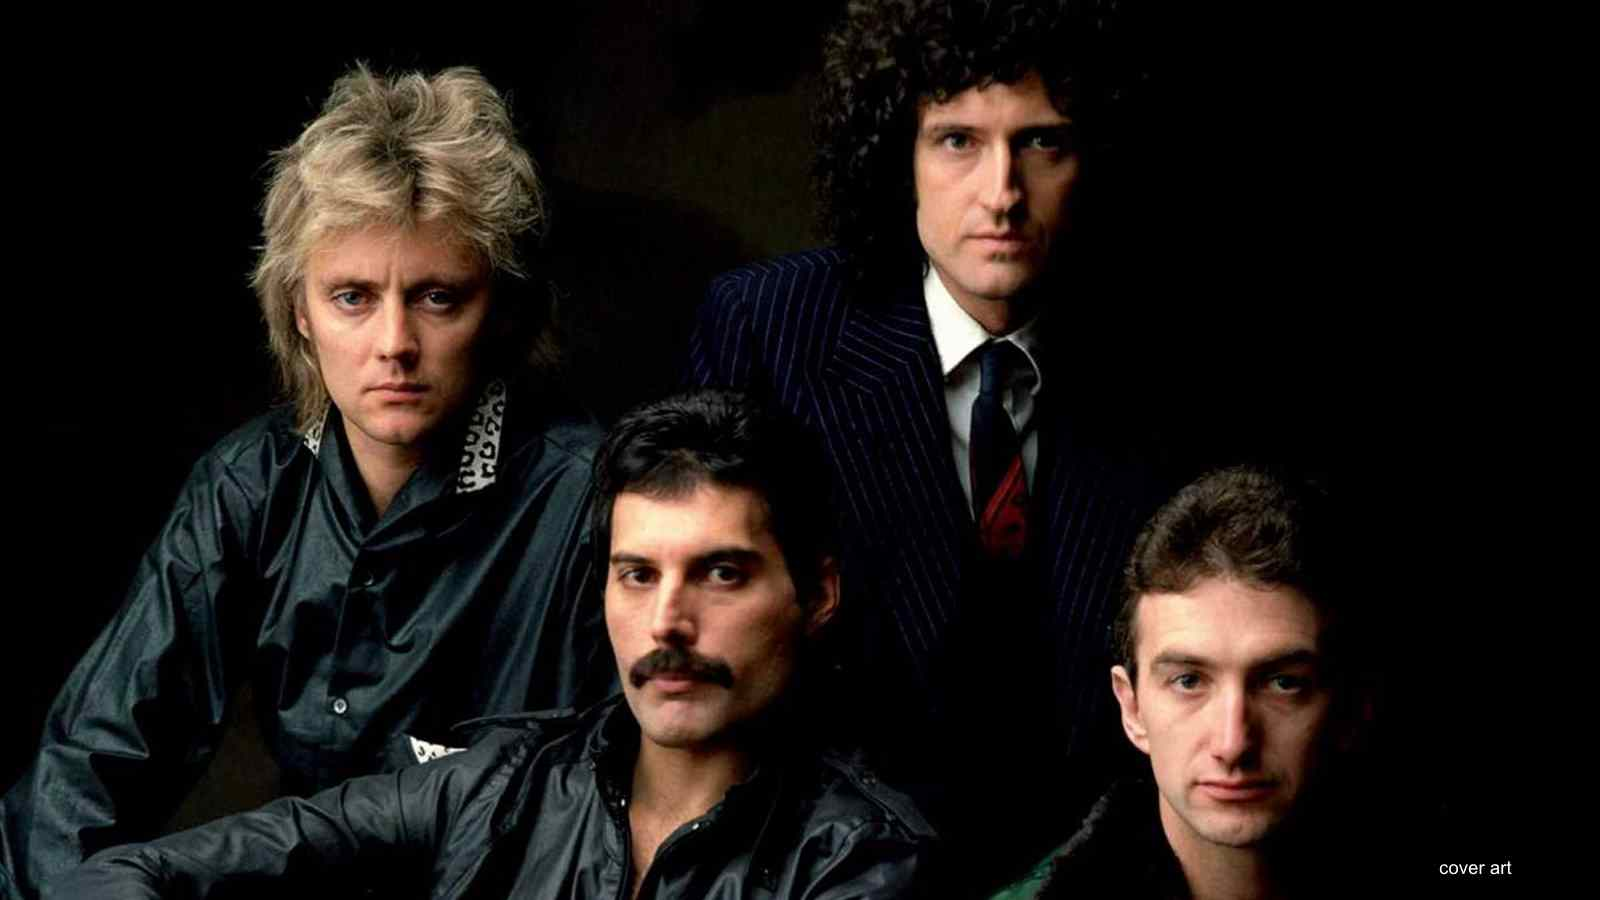 Queen Score Billboard Top 10 Hit Four Decades After Release